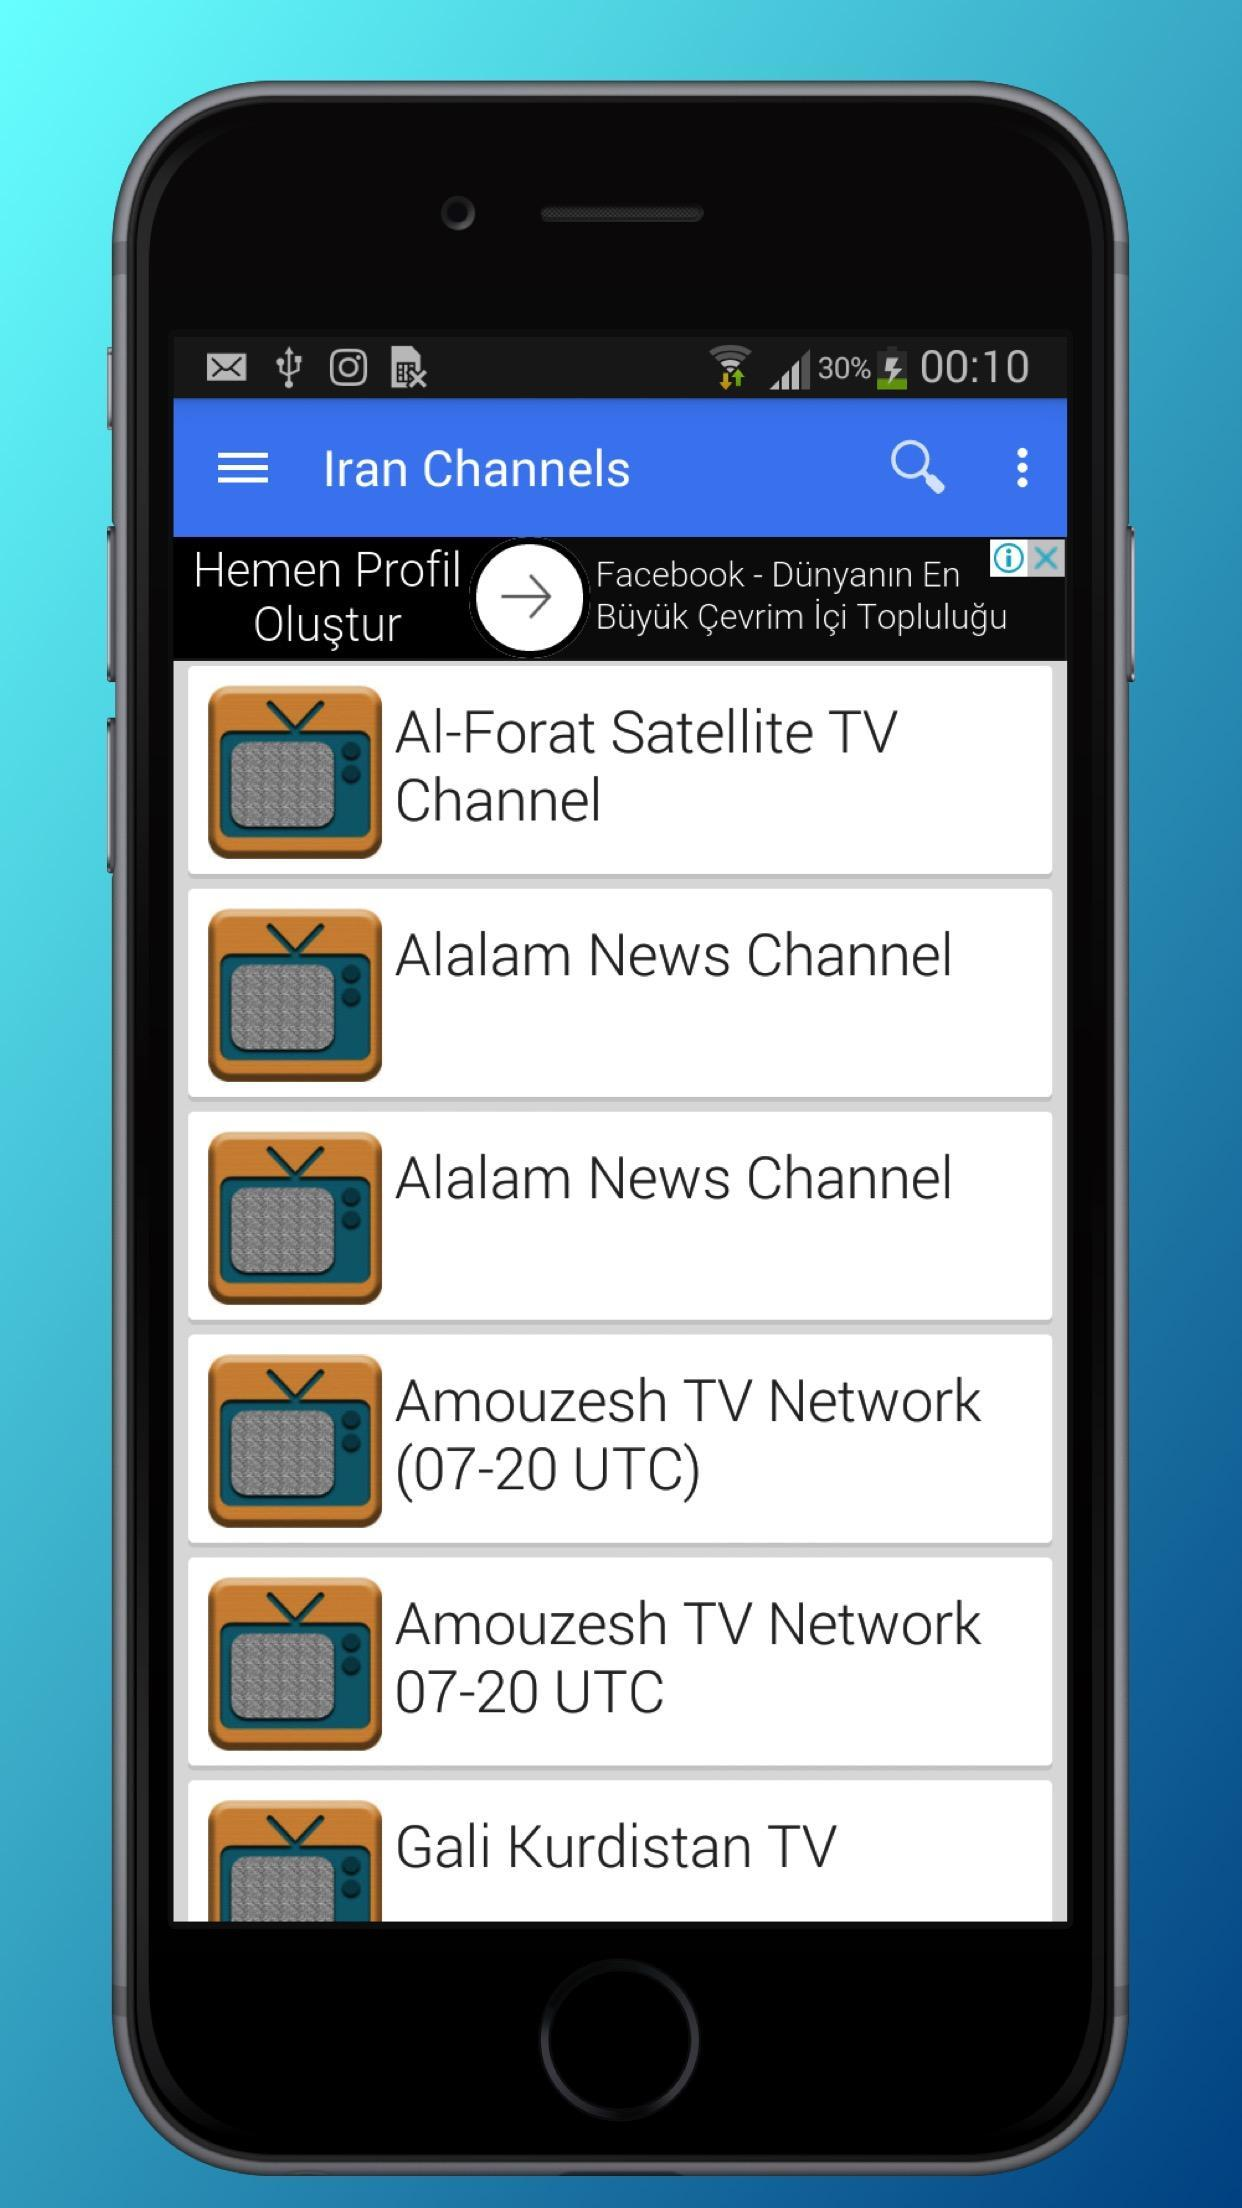 TV Iran Channels Sat Info for Android - APK Download